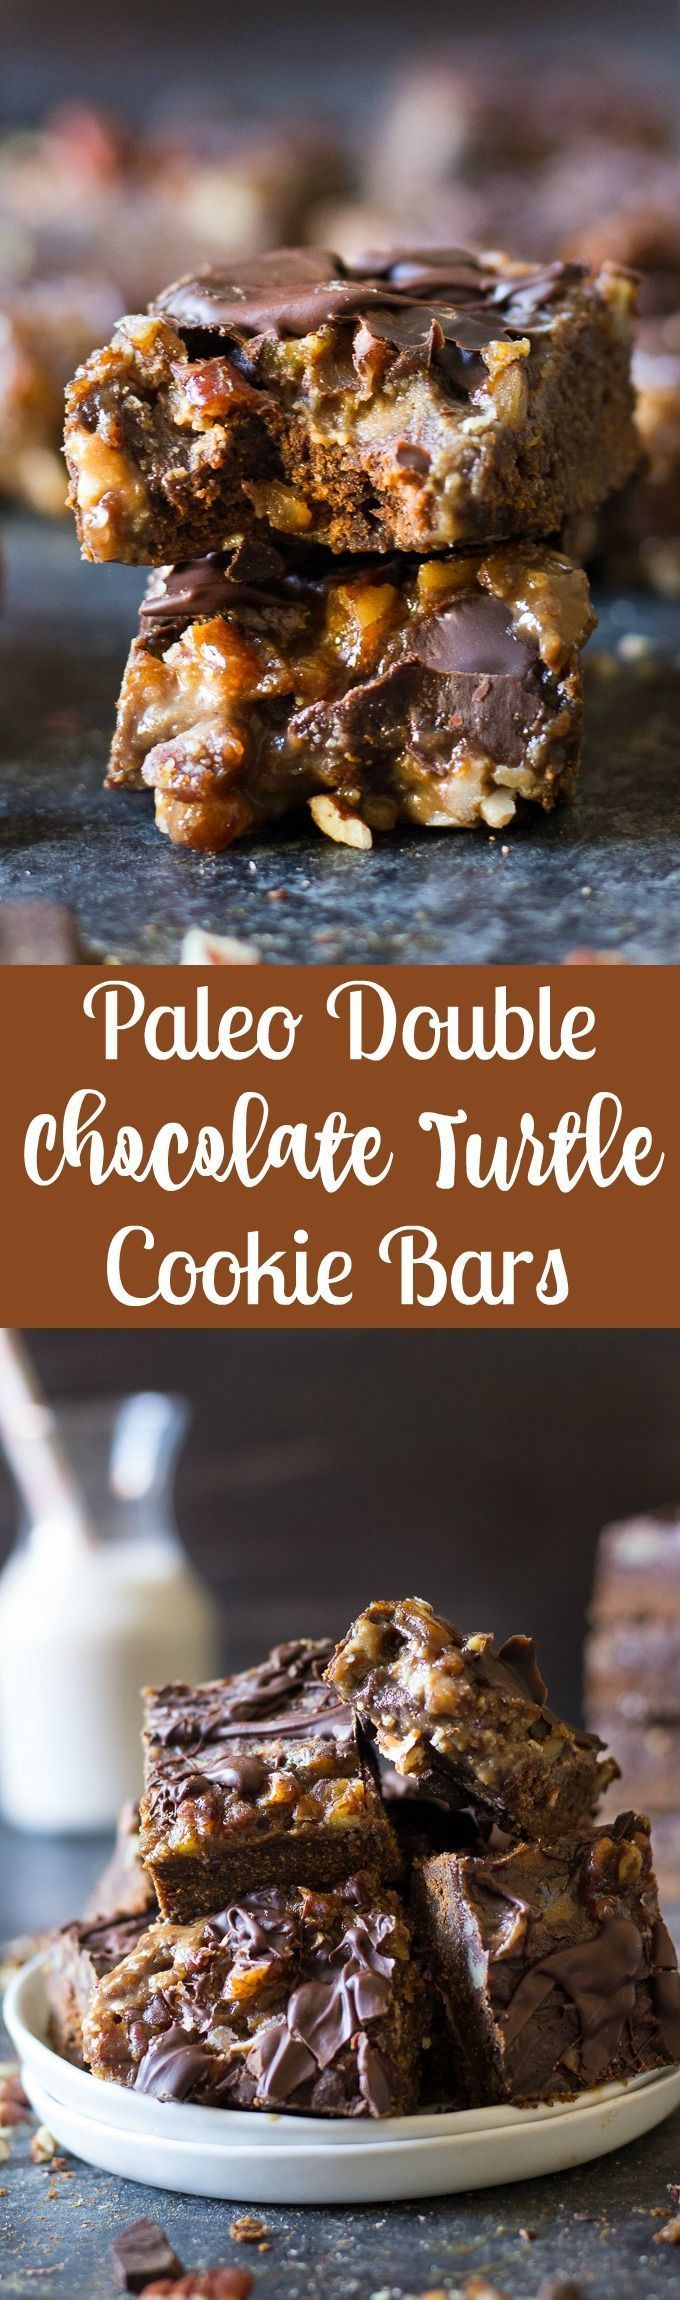 Gooey Paleo Double Chocolate Turtle Bars with a chewy chocolate cookie layer, gooey caramel pecan layer and creamy chocolate shell!  Gluten free, grain free, dairy free and makes a great holiday dessert!